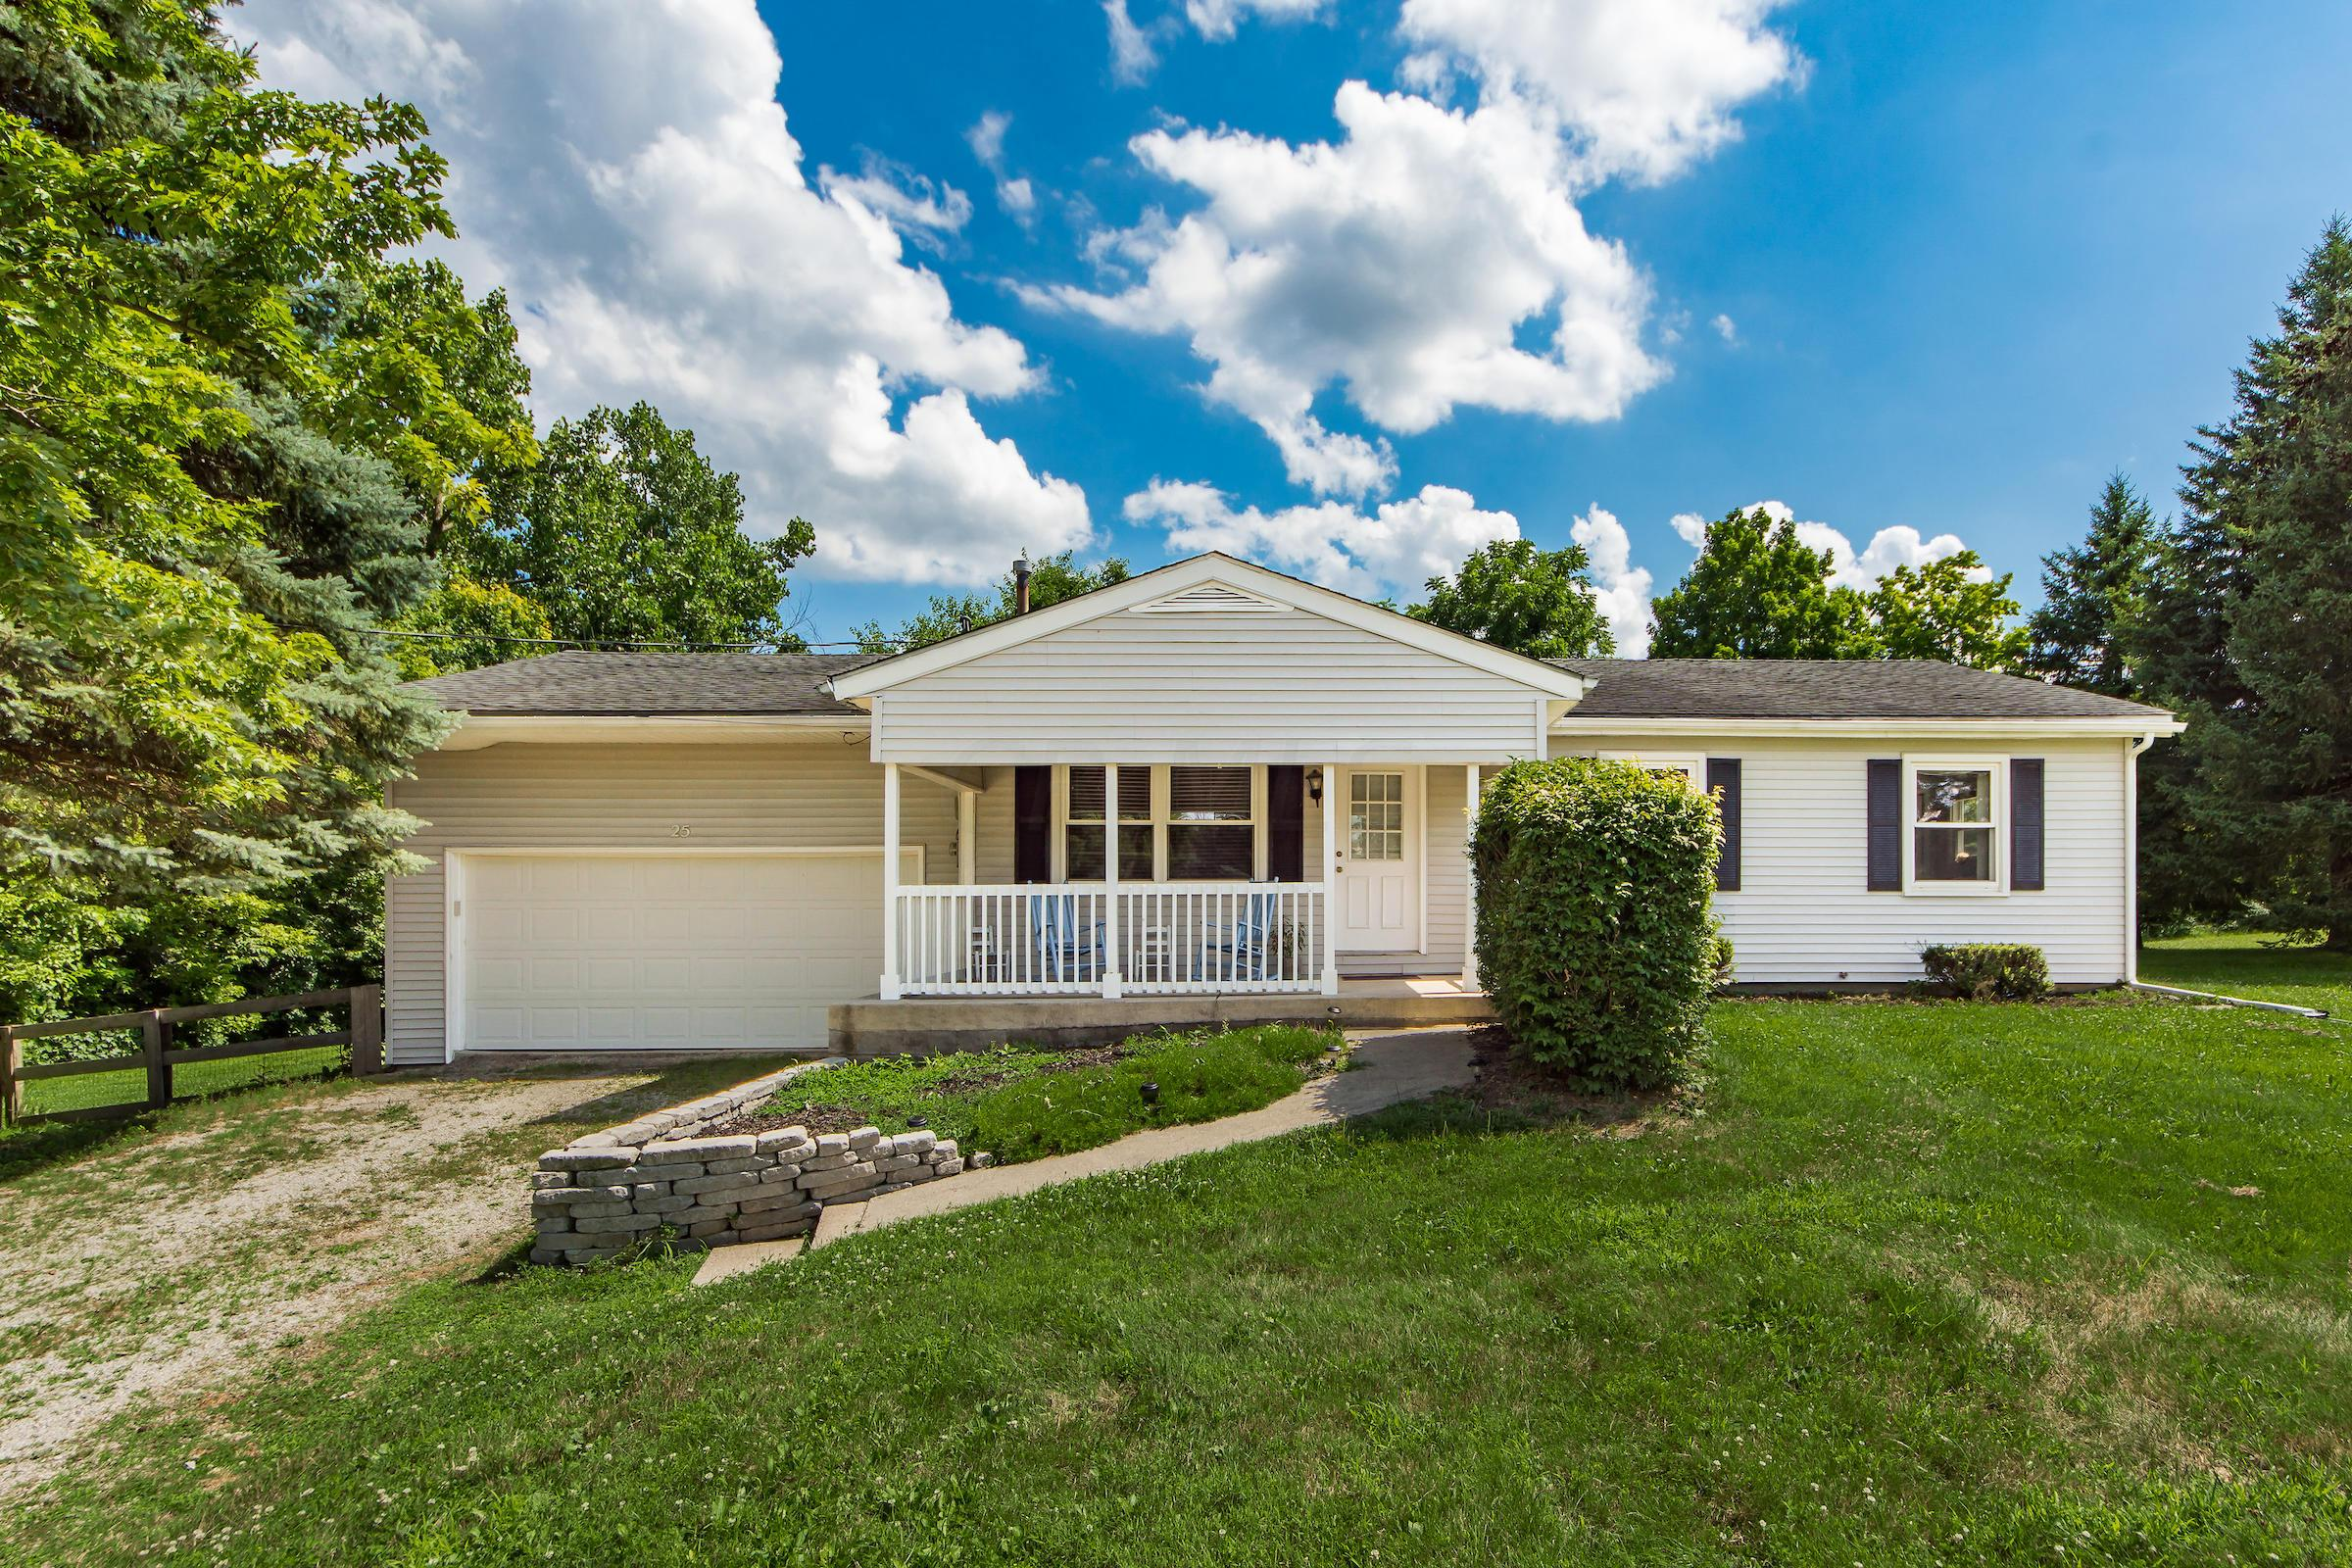 25 Cuyuga Drive, Powell, Ohio 43065, 3 Bedrooms Bedrooms, ,2 BathroomsBathrooms,Residential,For Sale,Cuyuga,220022865